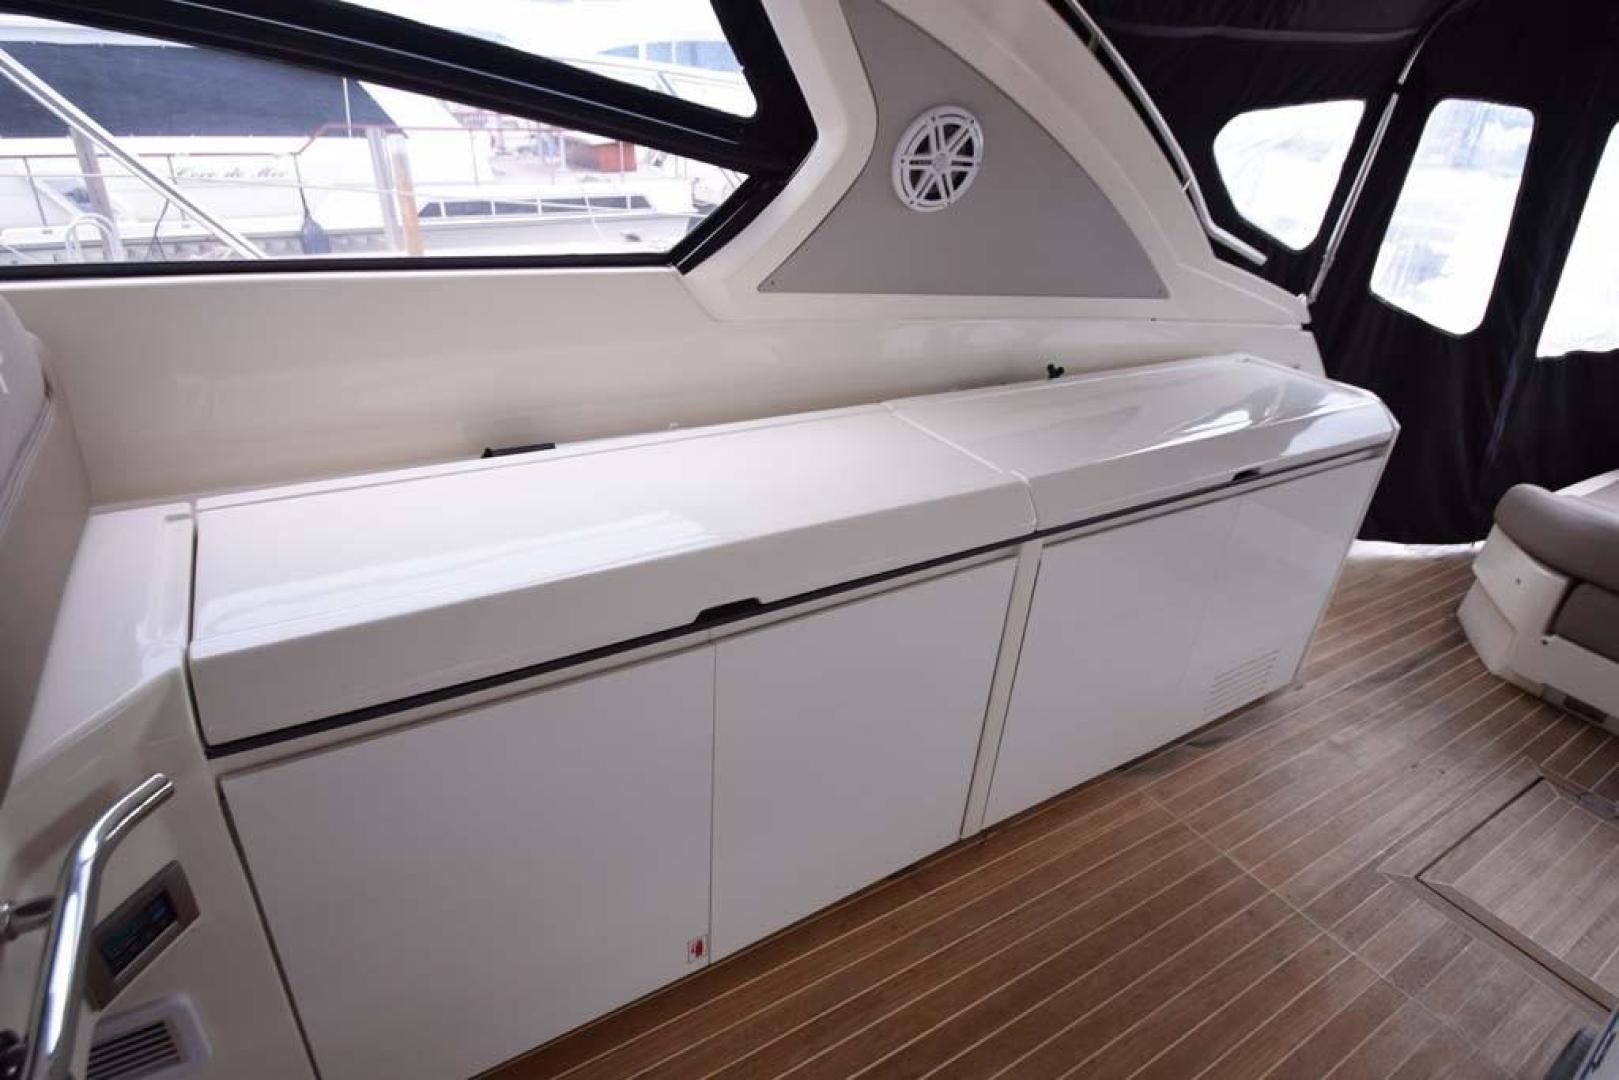 Azimut-48 ATLANTIS 2013-Spectrum Miami-Florida-United States-Starboard Side Wet Bar with Cover-369662 | Thumbnail